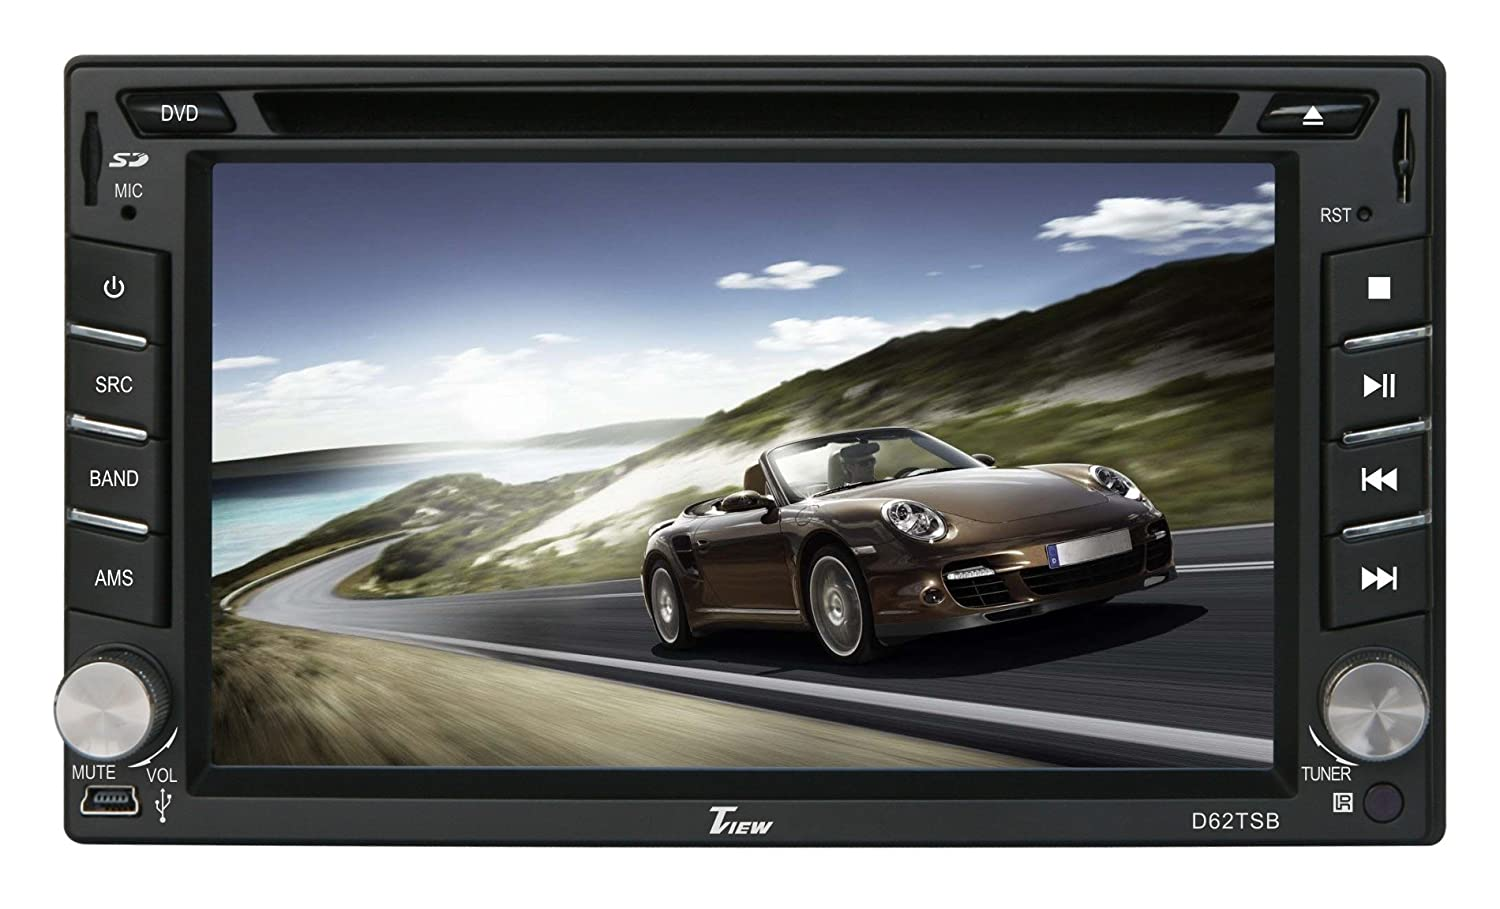 71N8 eVkMJL._SL1500_ amazon com tview d62tsb 6 2 inch double din touch screen with tview d75tsb wiring harness at nearapp.co